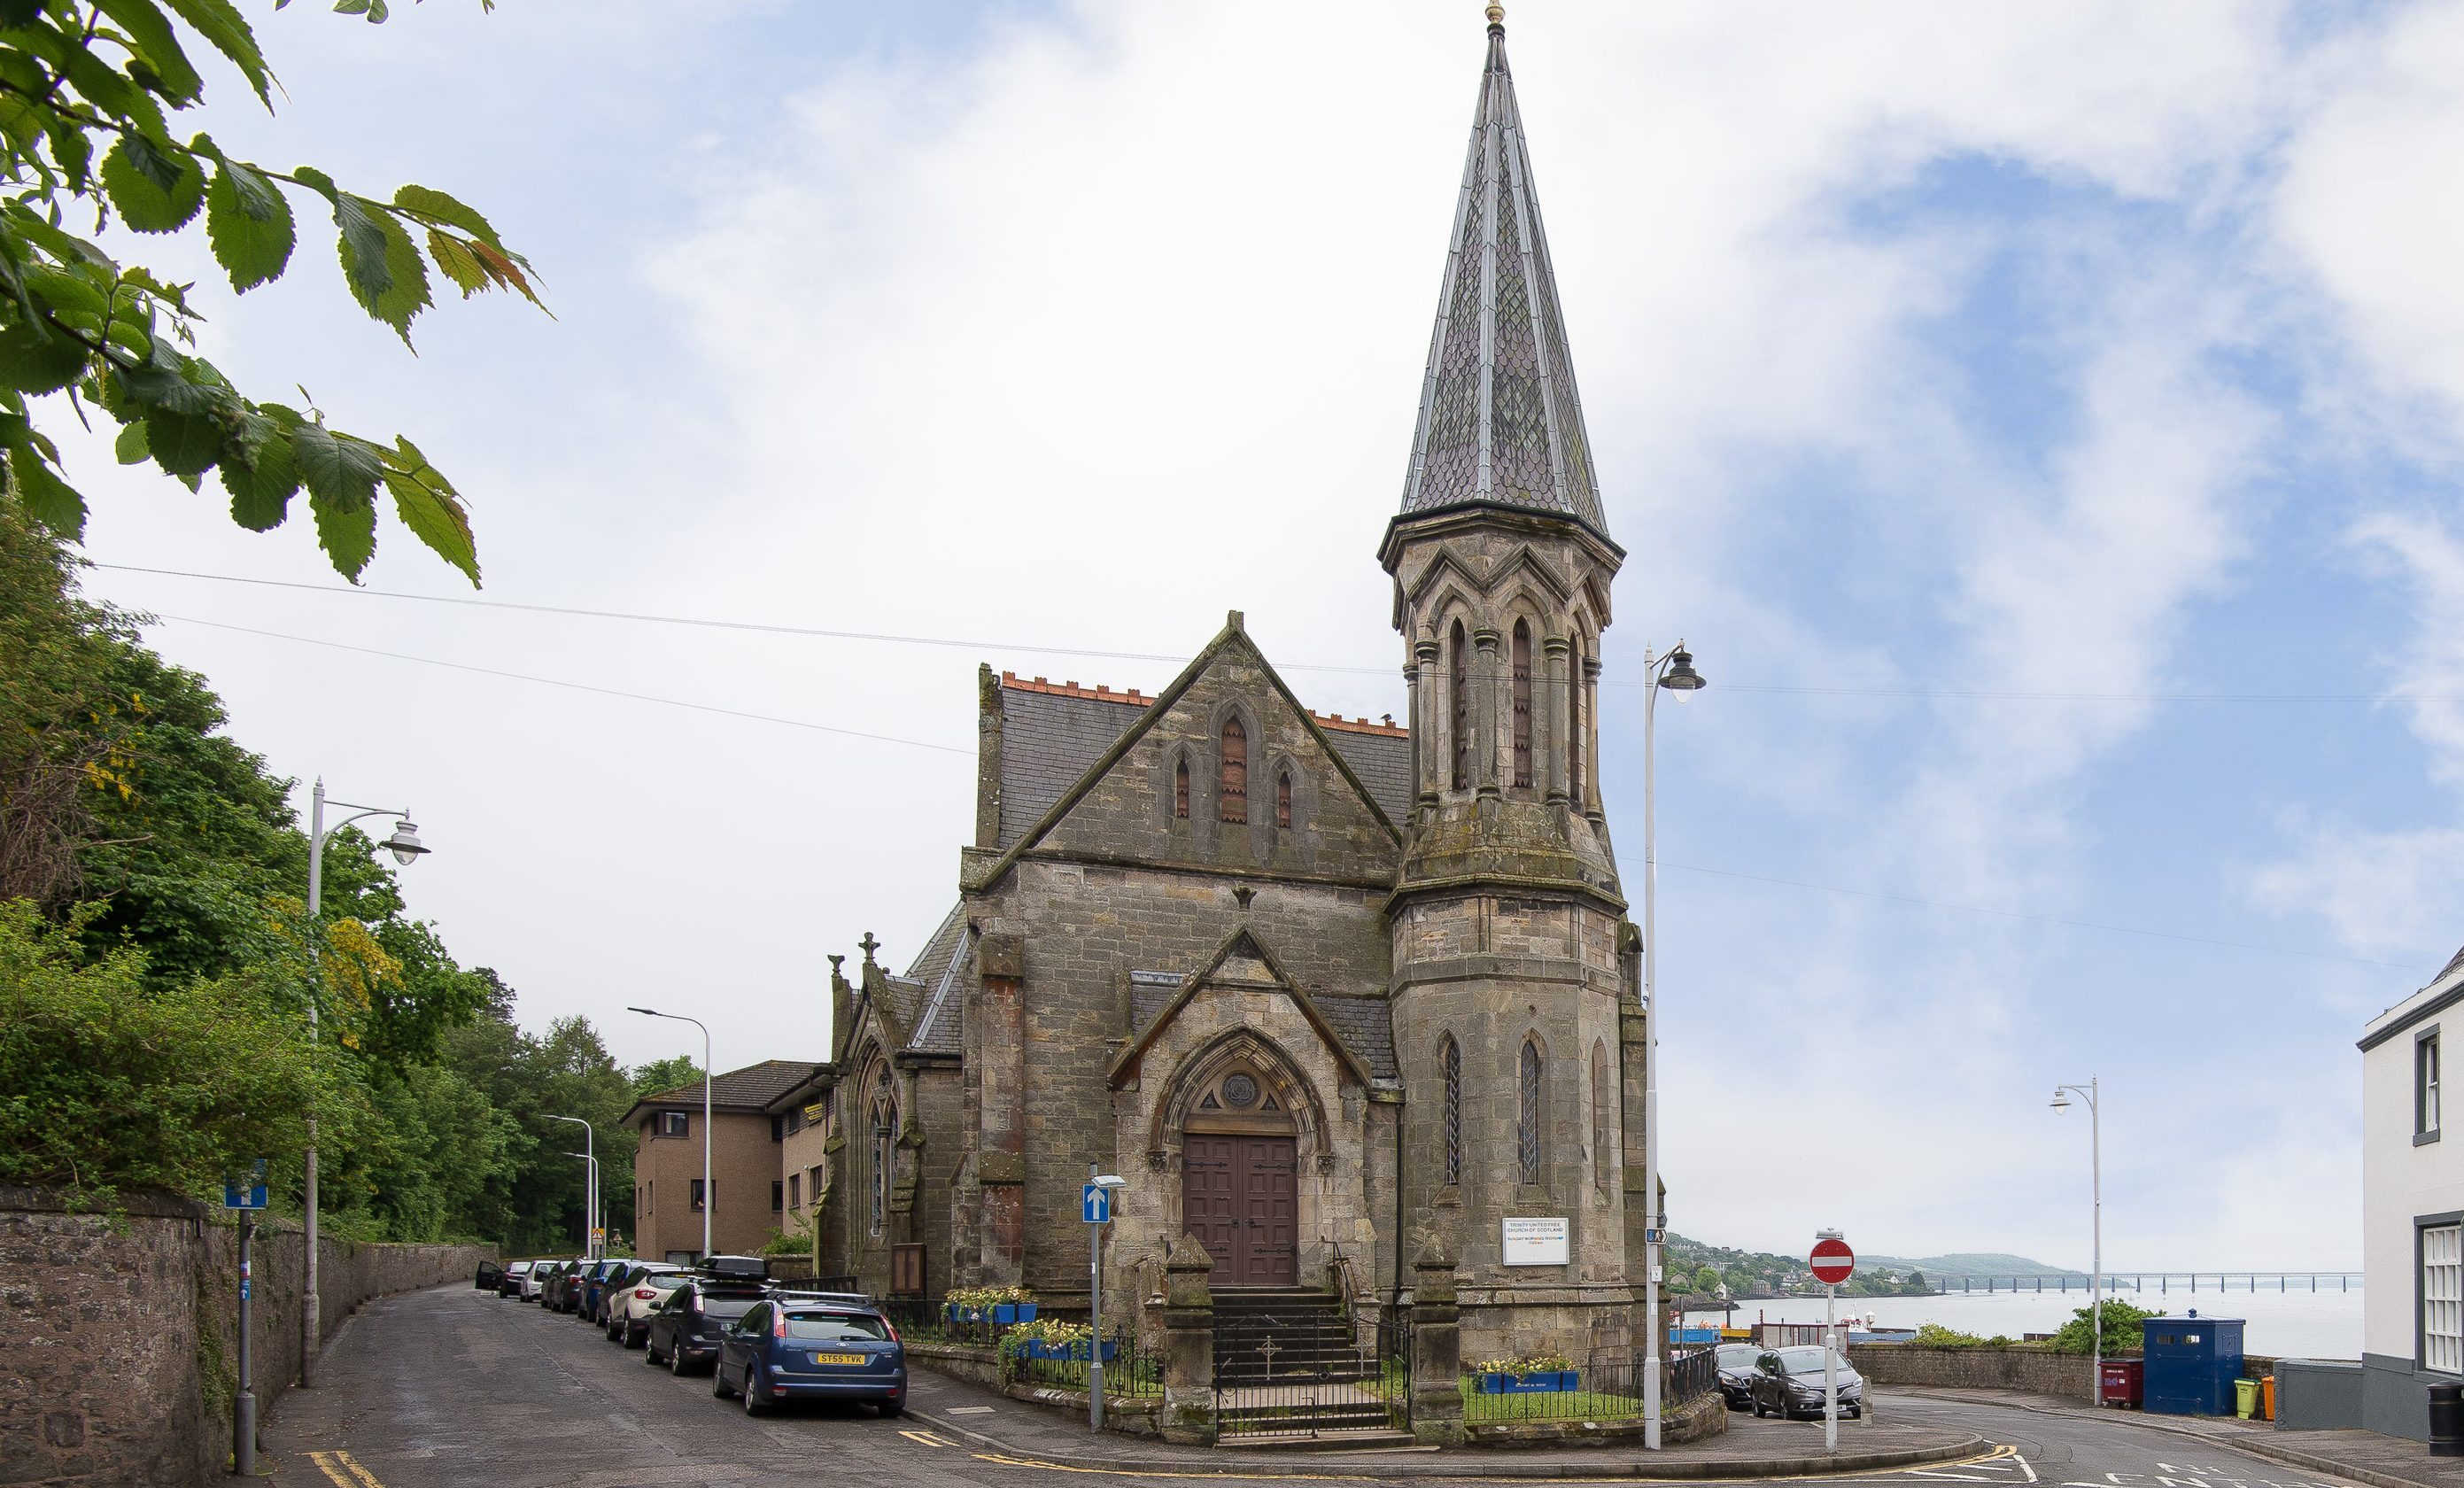 The church was built it 1881.